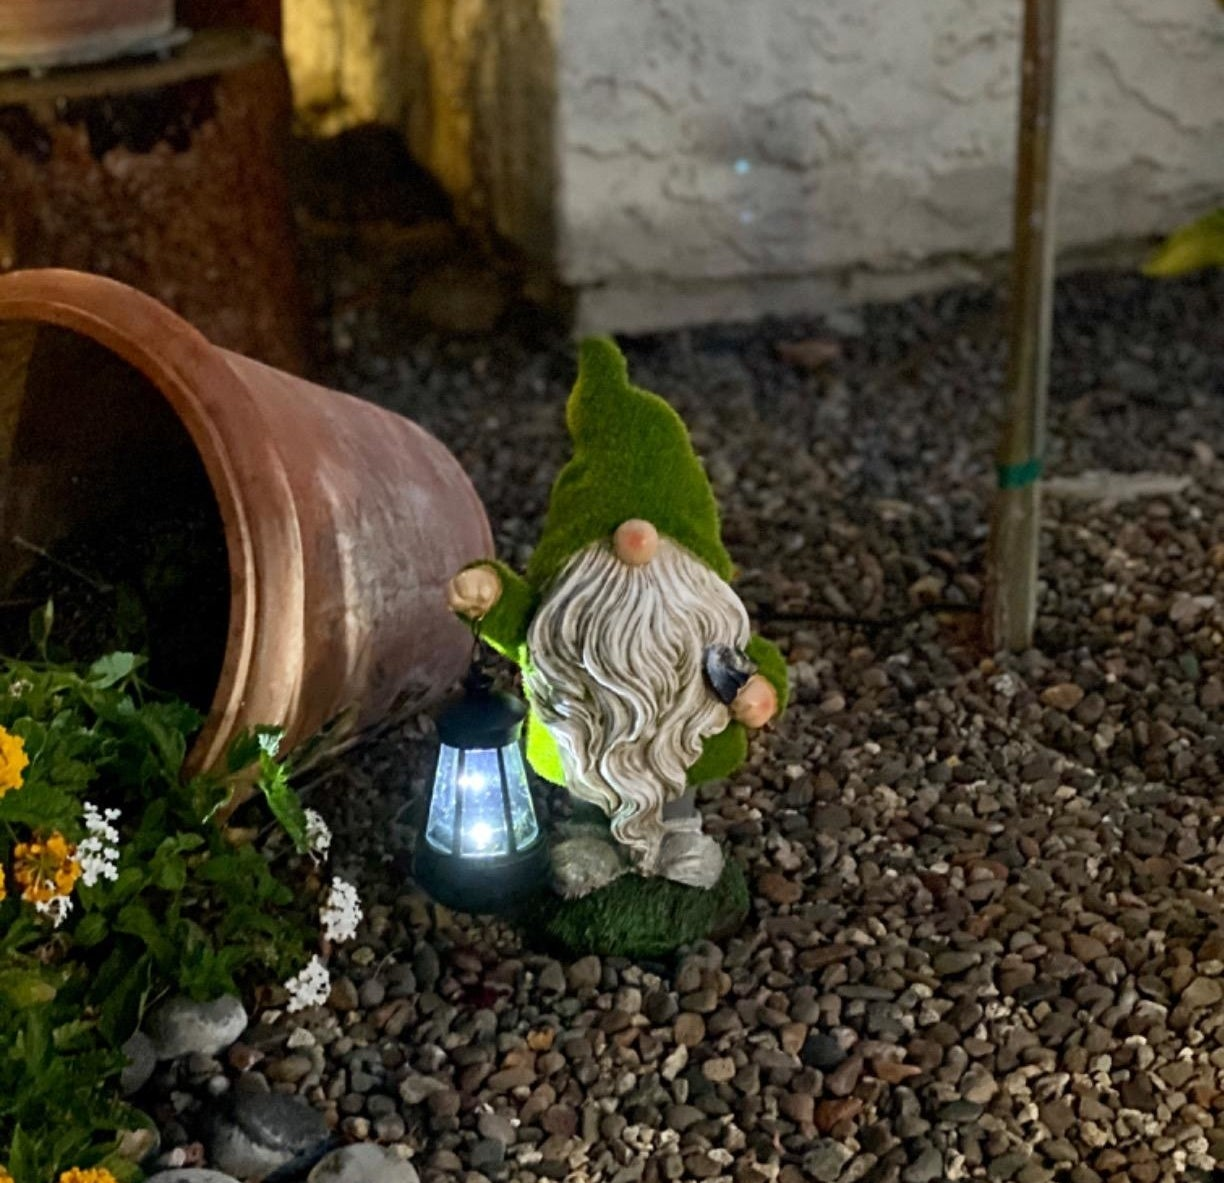 A reviewer photo of the gnome with a mossy hat holding a lit lantern on top of pebbles